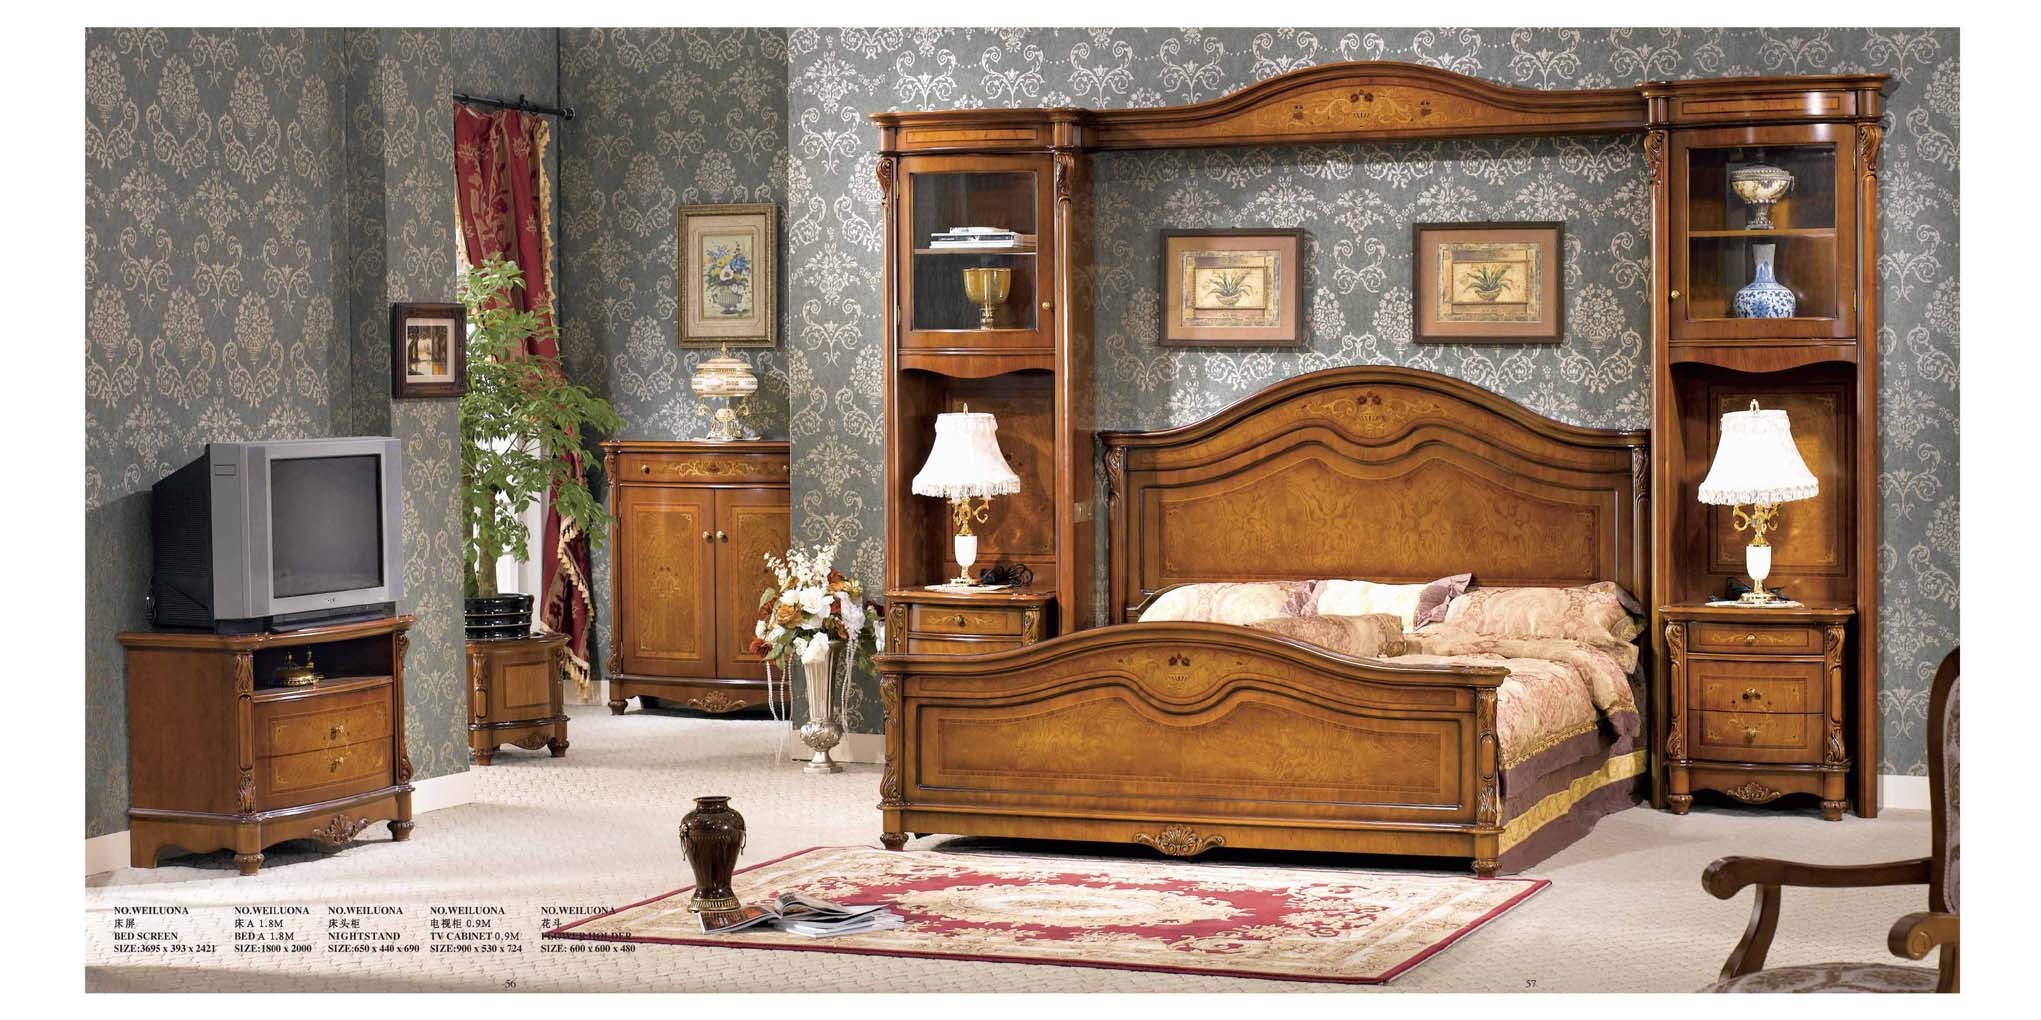 Great Bed Room Furniture Sets 2041 x 1020 · 295 kB · jpeg